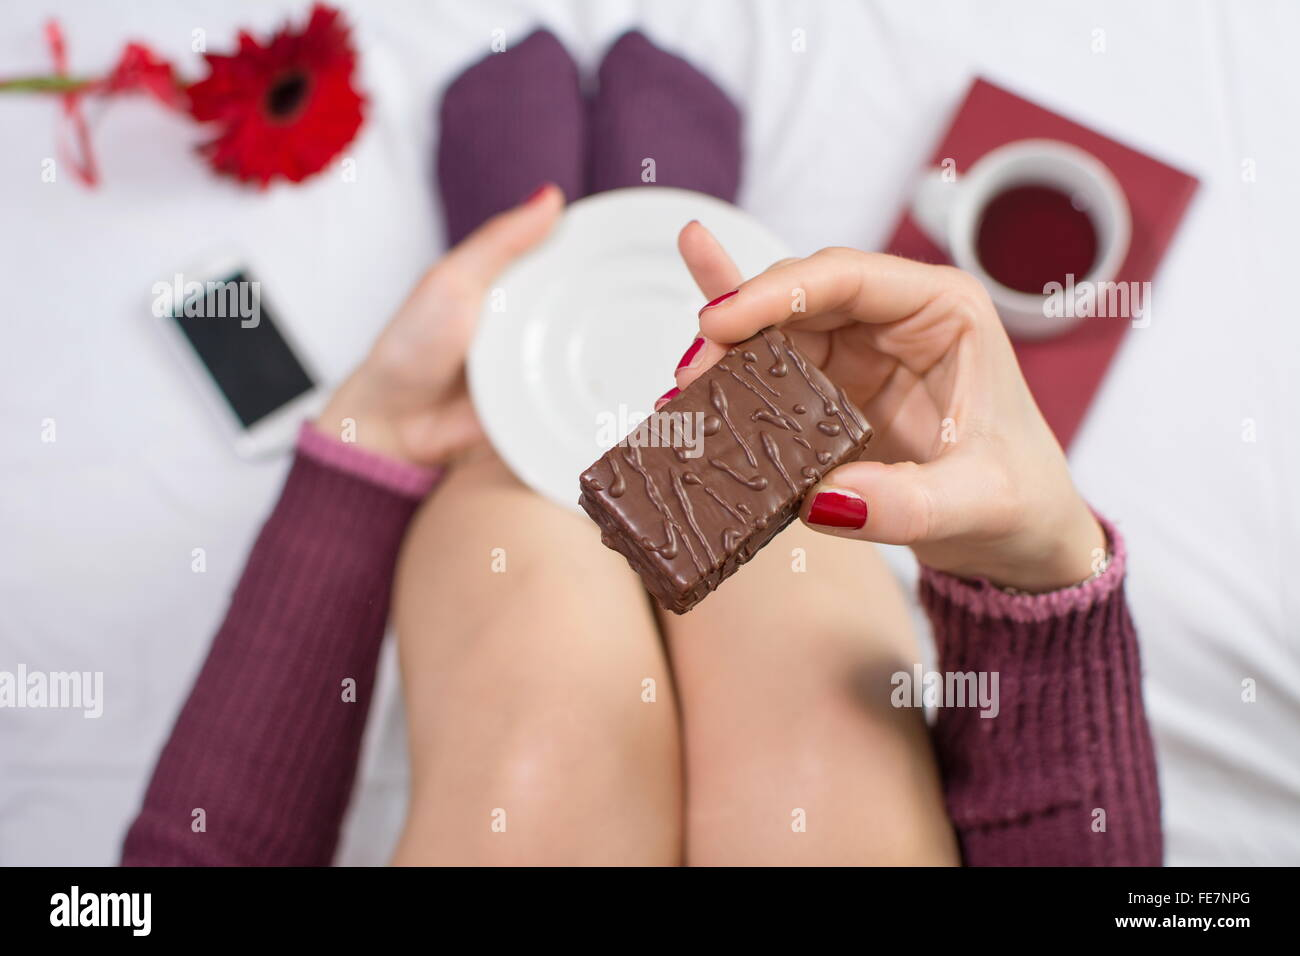 Girl having her sweet dessert in bed - Stock Image